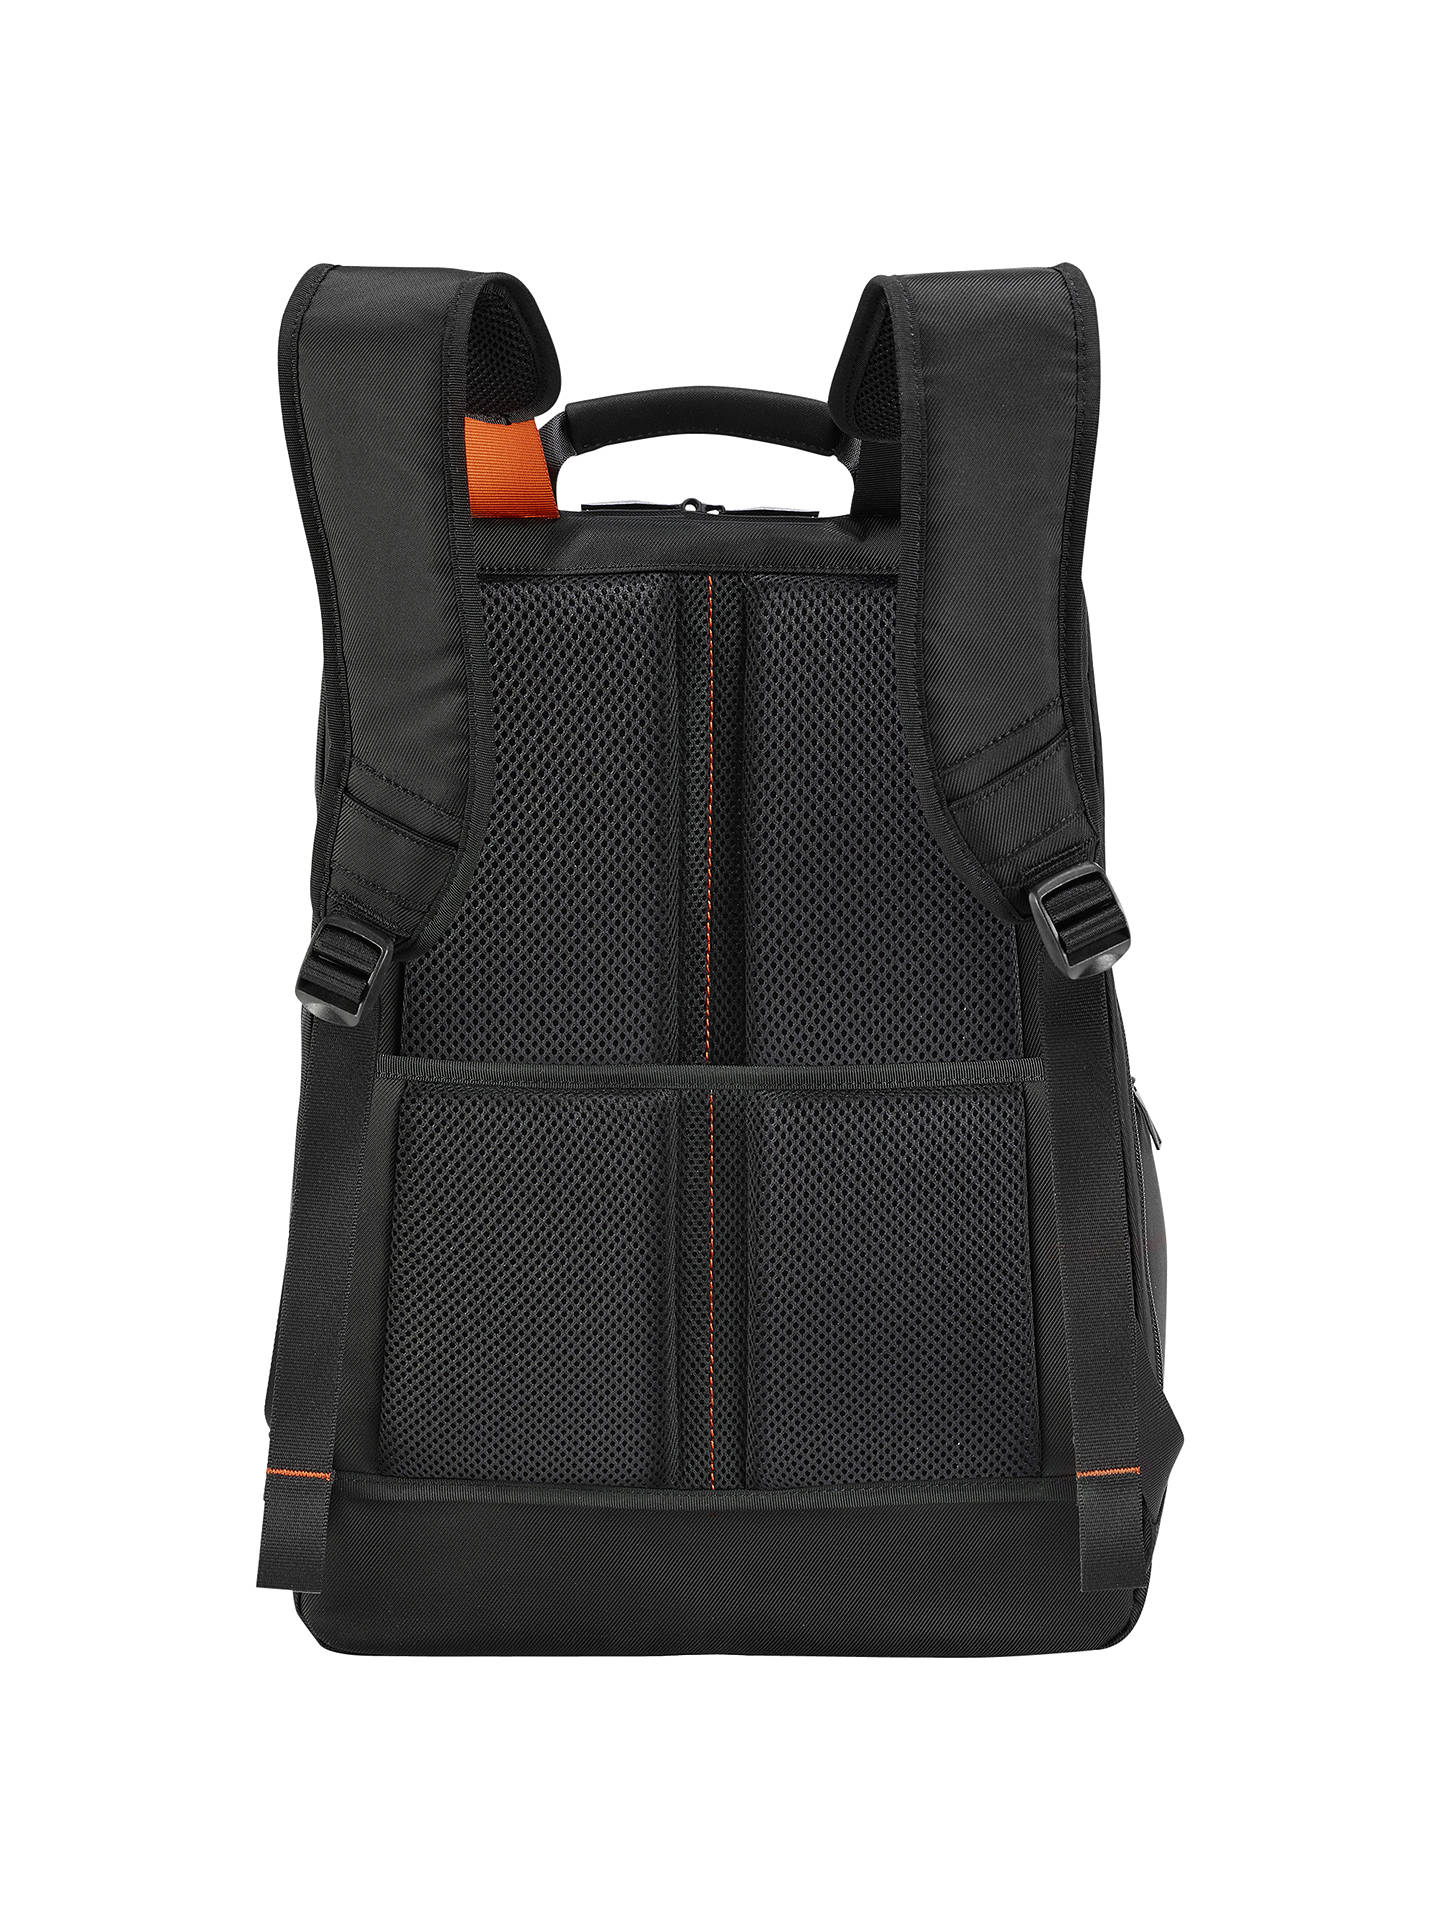 "BuyBriggs & Riley Verb Accelerate 17"" Laptop Backpack, Black Online at johnlewis.com"